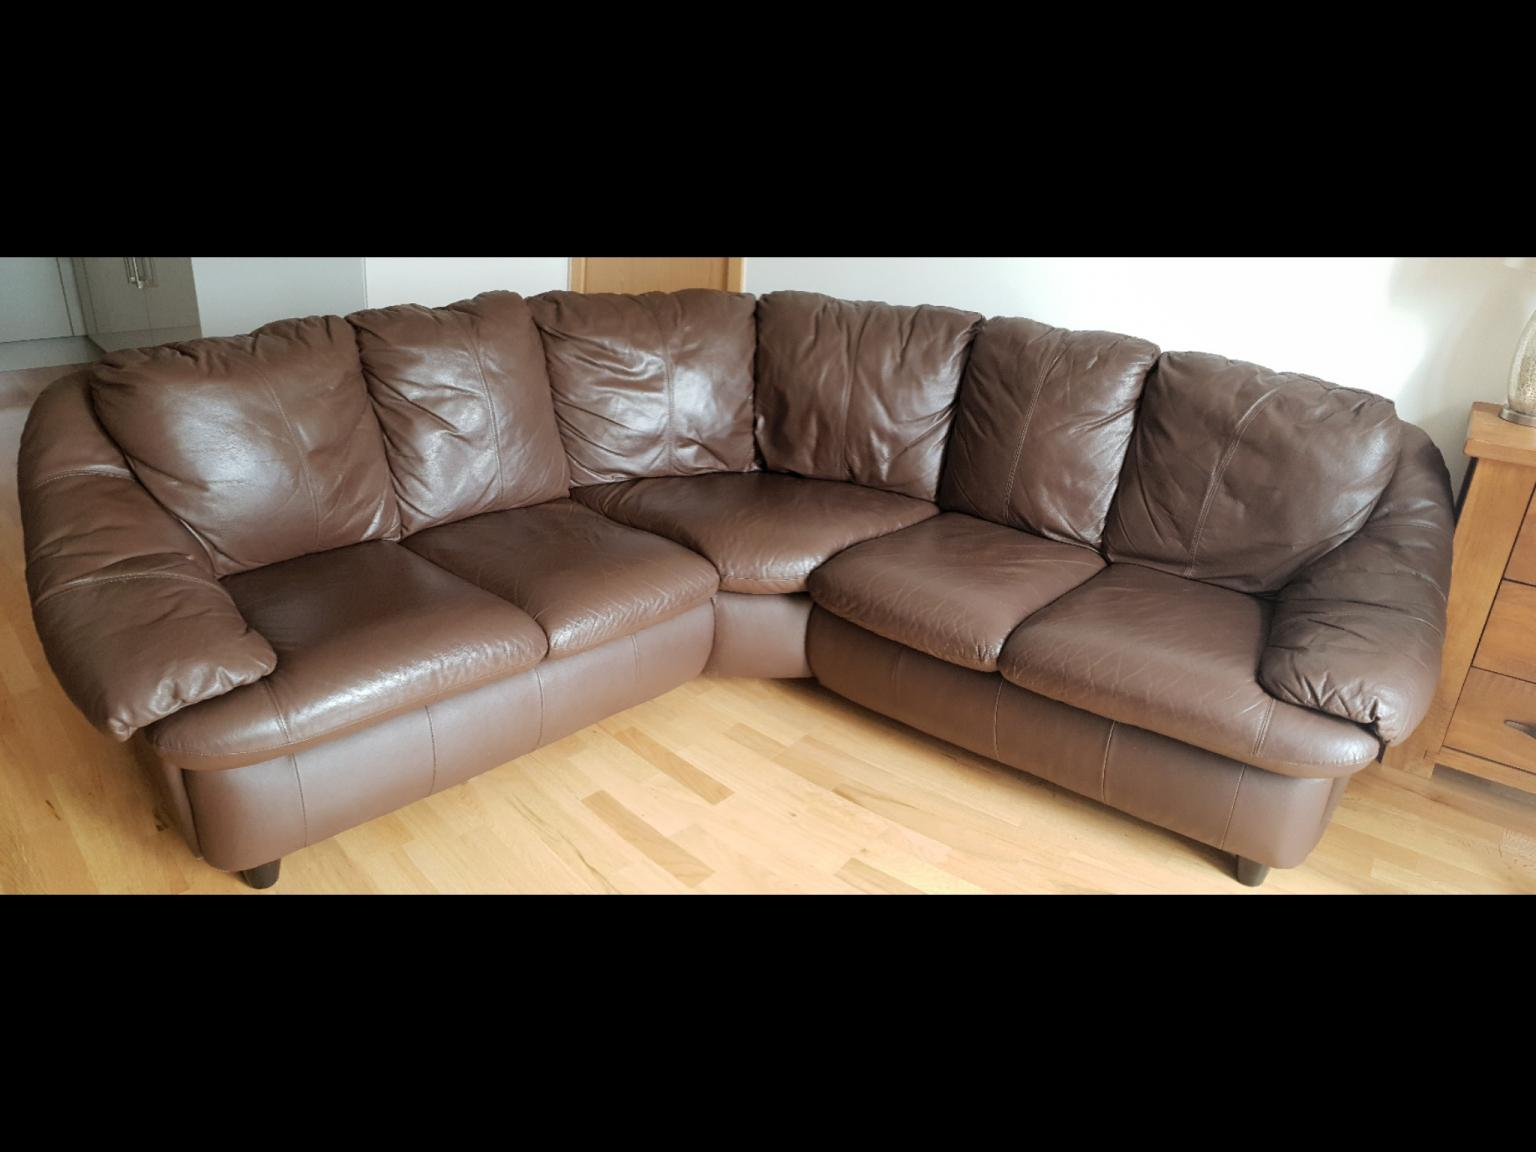 Miraculous 5 Seater Real Leather Sofa Dark Brown Forskolin Free Trial Chair Design Images Forskolin Free Trialorg